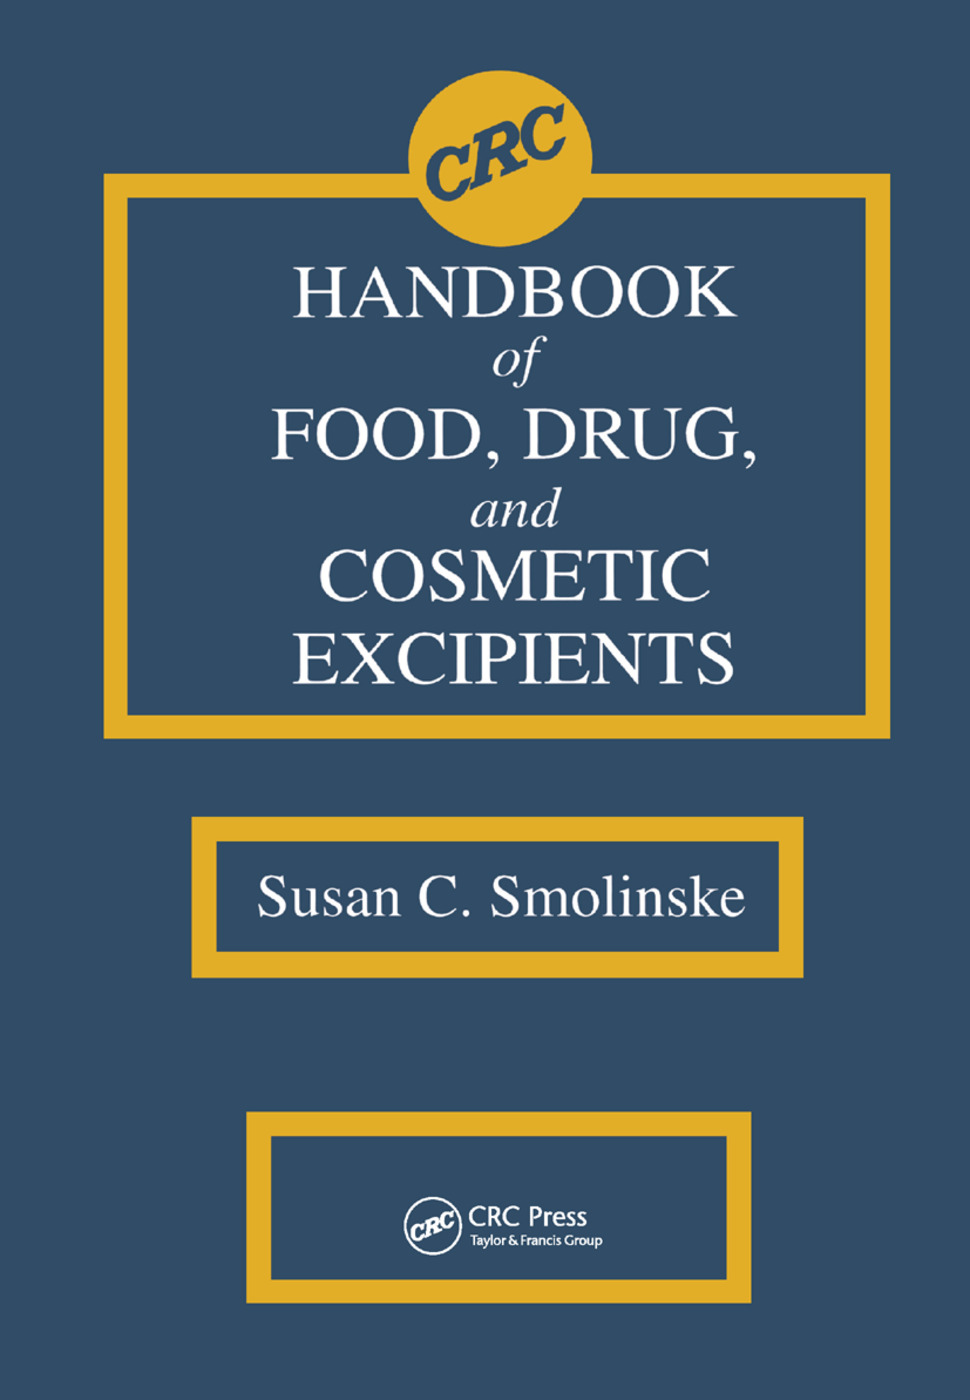 CRC Handbook of Food, Drug, and Cosmetic Excipients: 1st Edition (Paperback) book cover